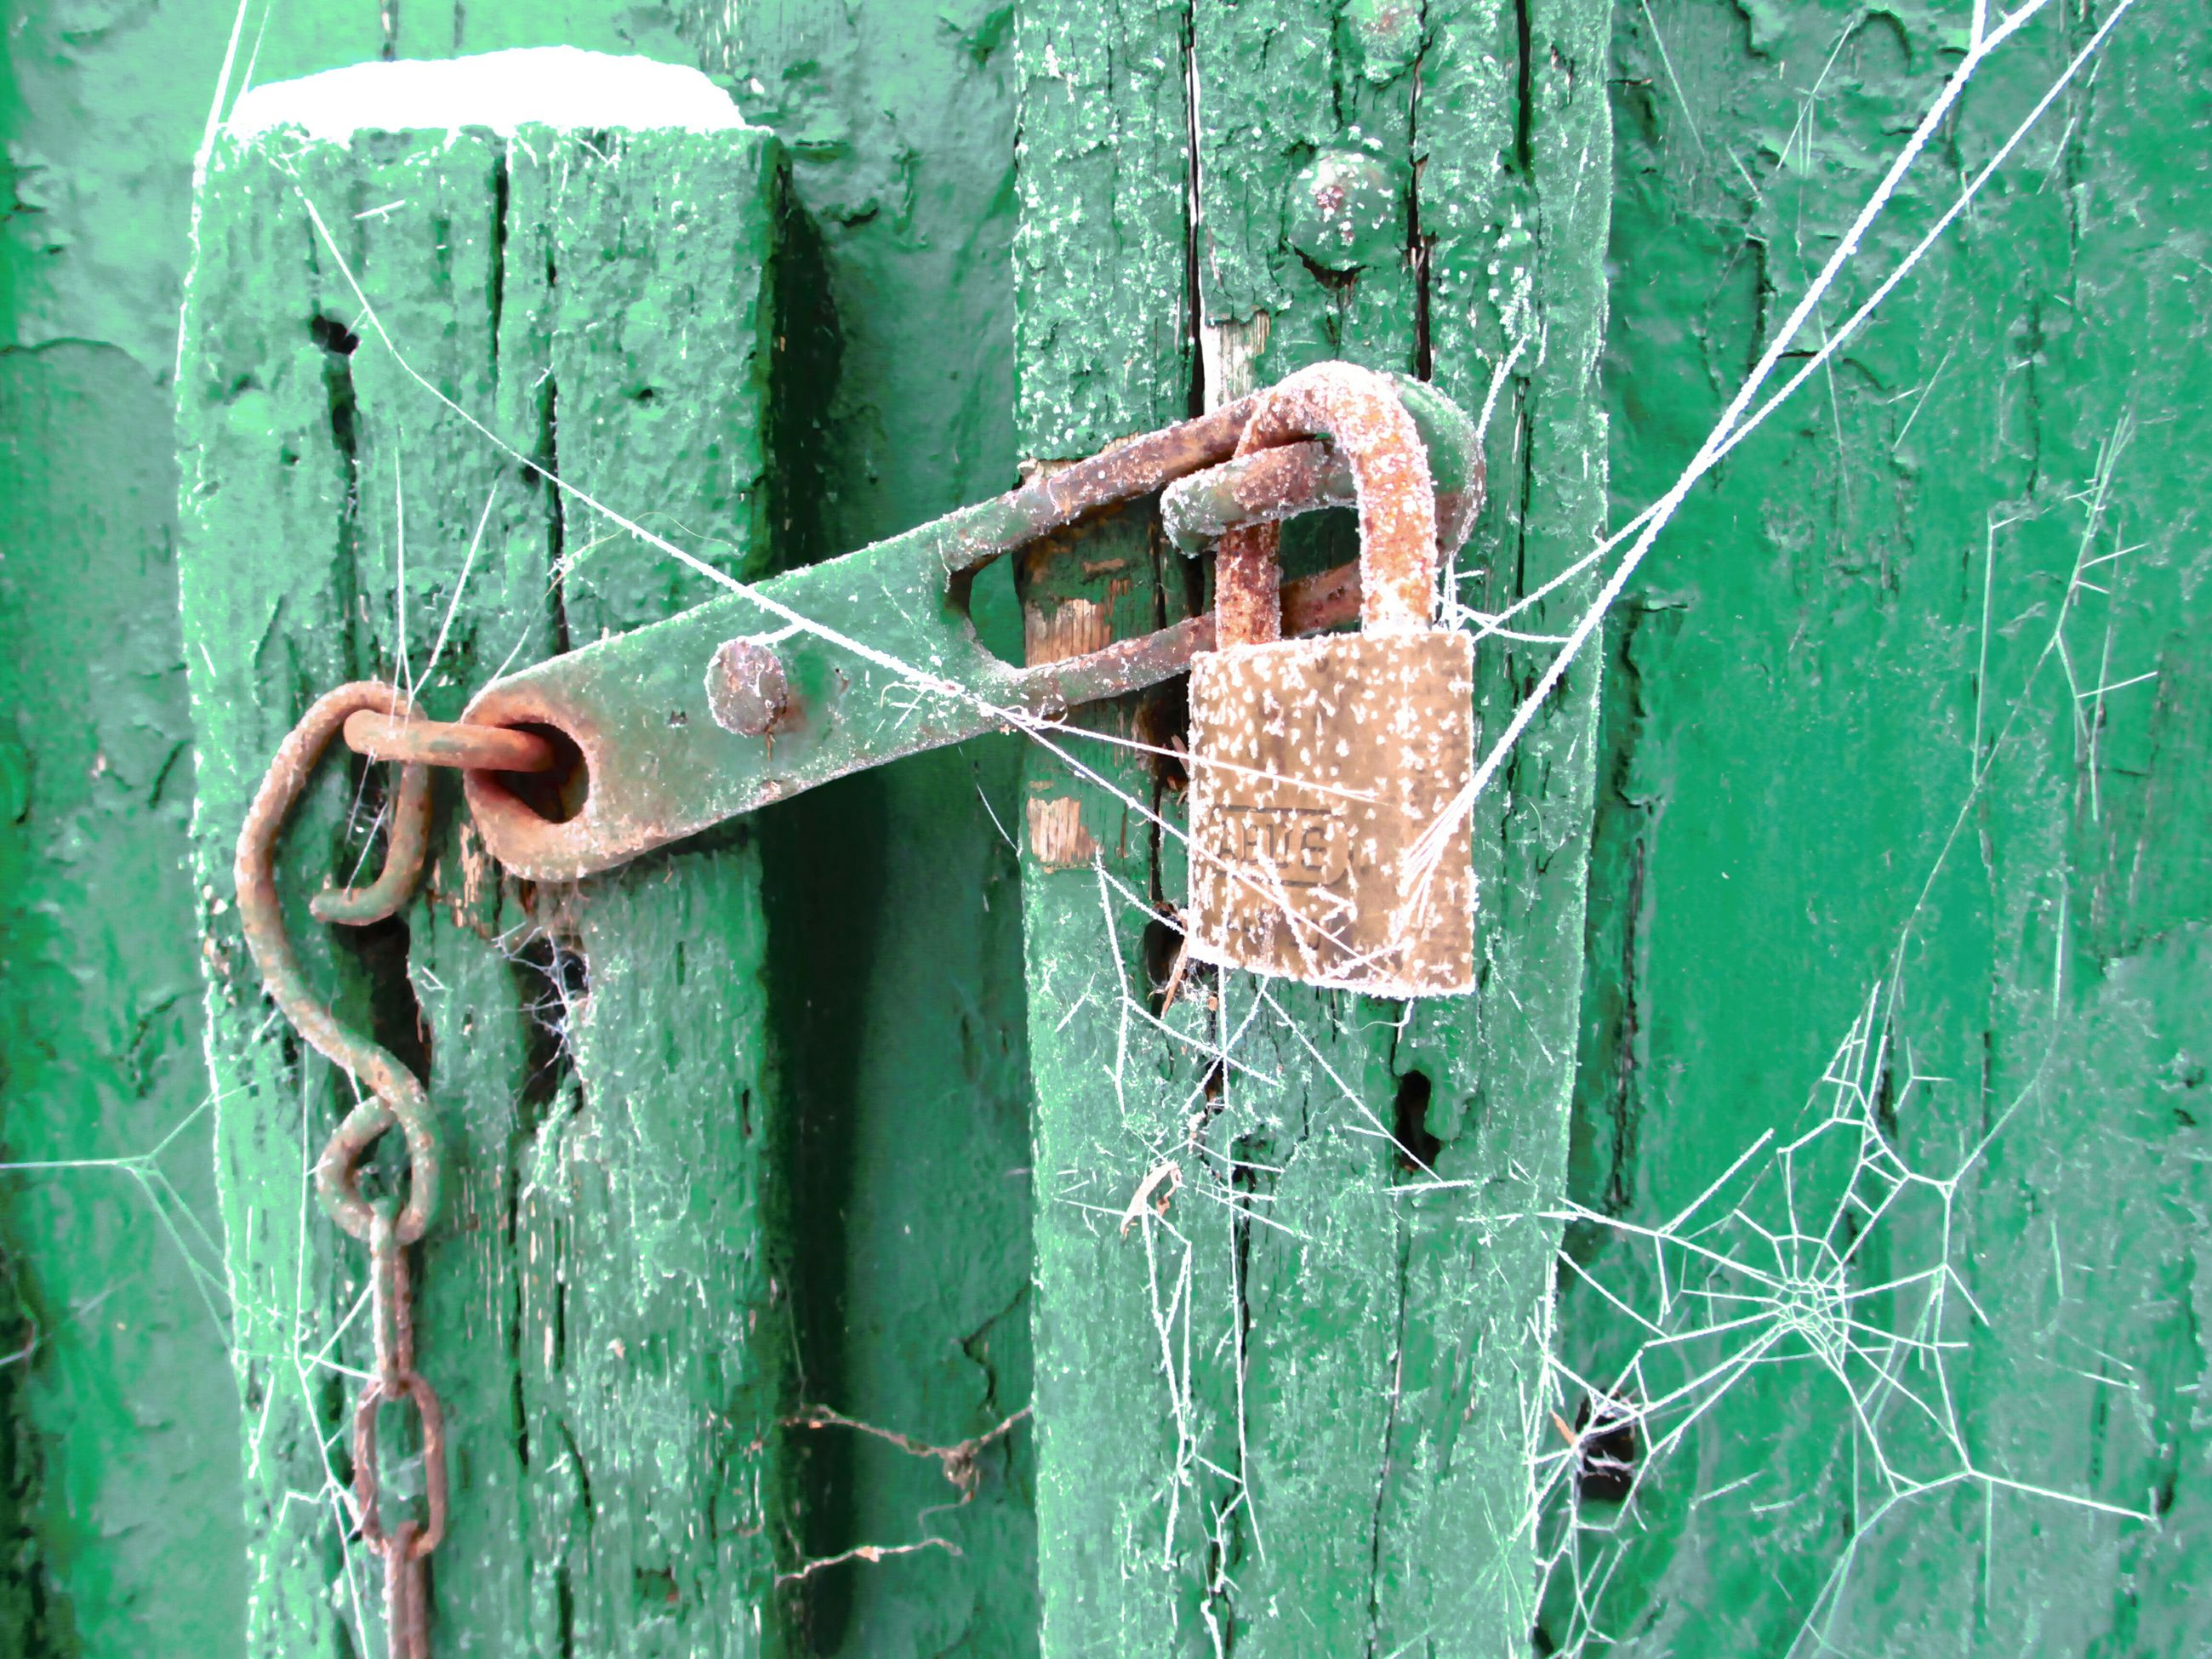 rusty, metal, old, security, deterioration, weathered, obsolete, run-down, close-up, safety, protection, metallic, damaged, padlock, lock, abandoned, door, green color, day, bad condition